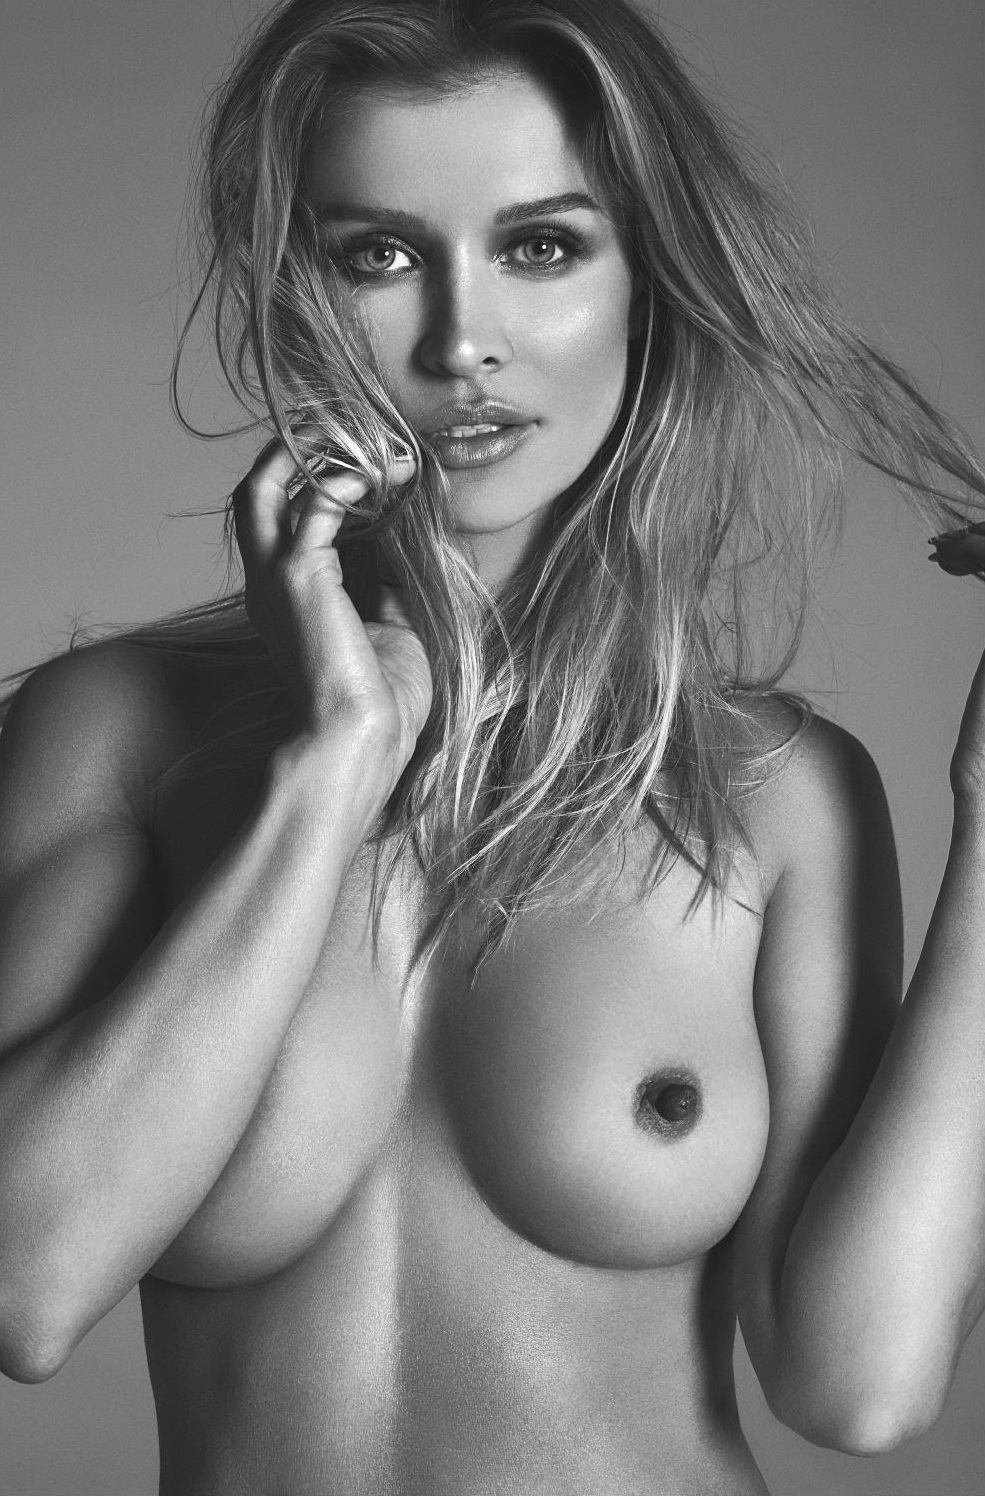 Hot Tits Joanna Krupa naked photo 2017